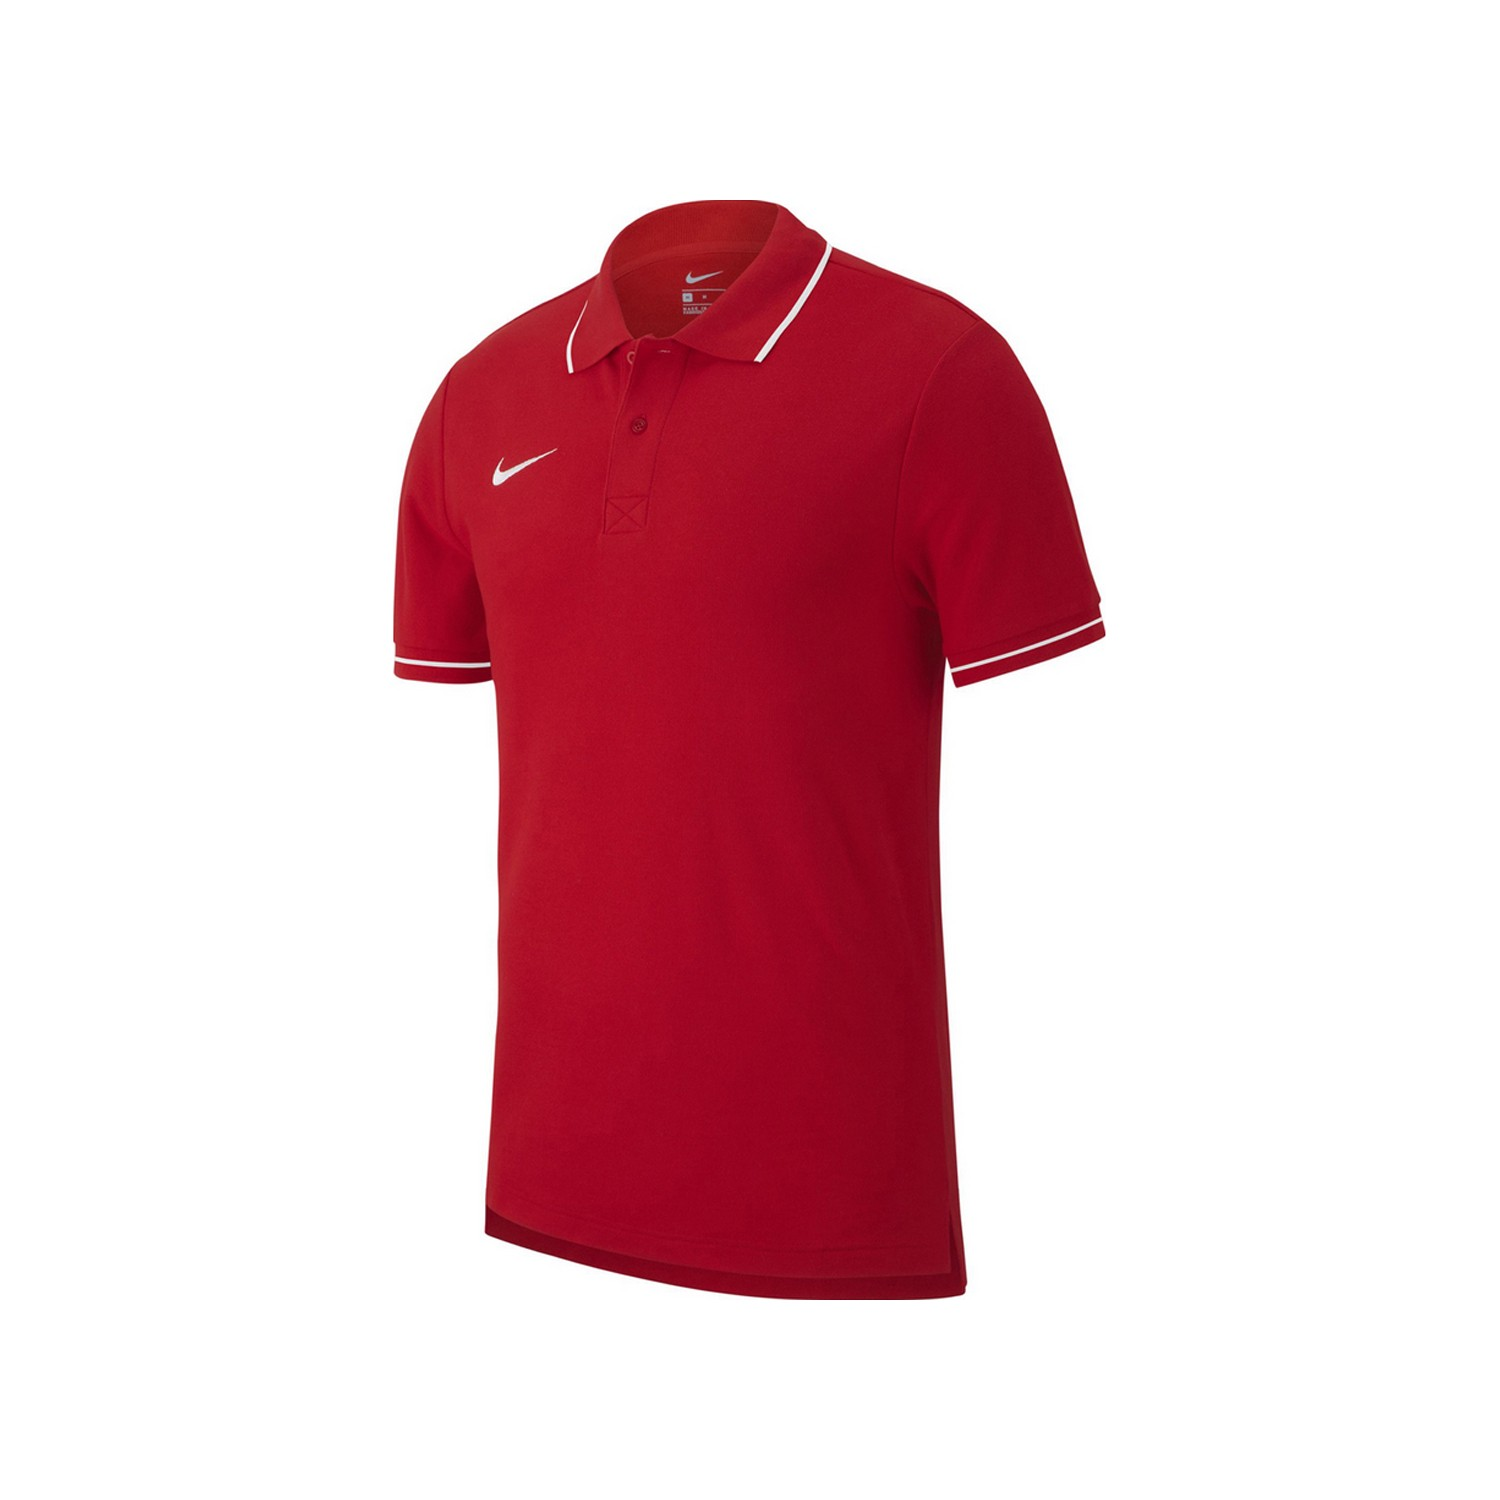 90e34fa4 Nike Team Club 19 Polo - HANDBALLcompany.de